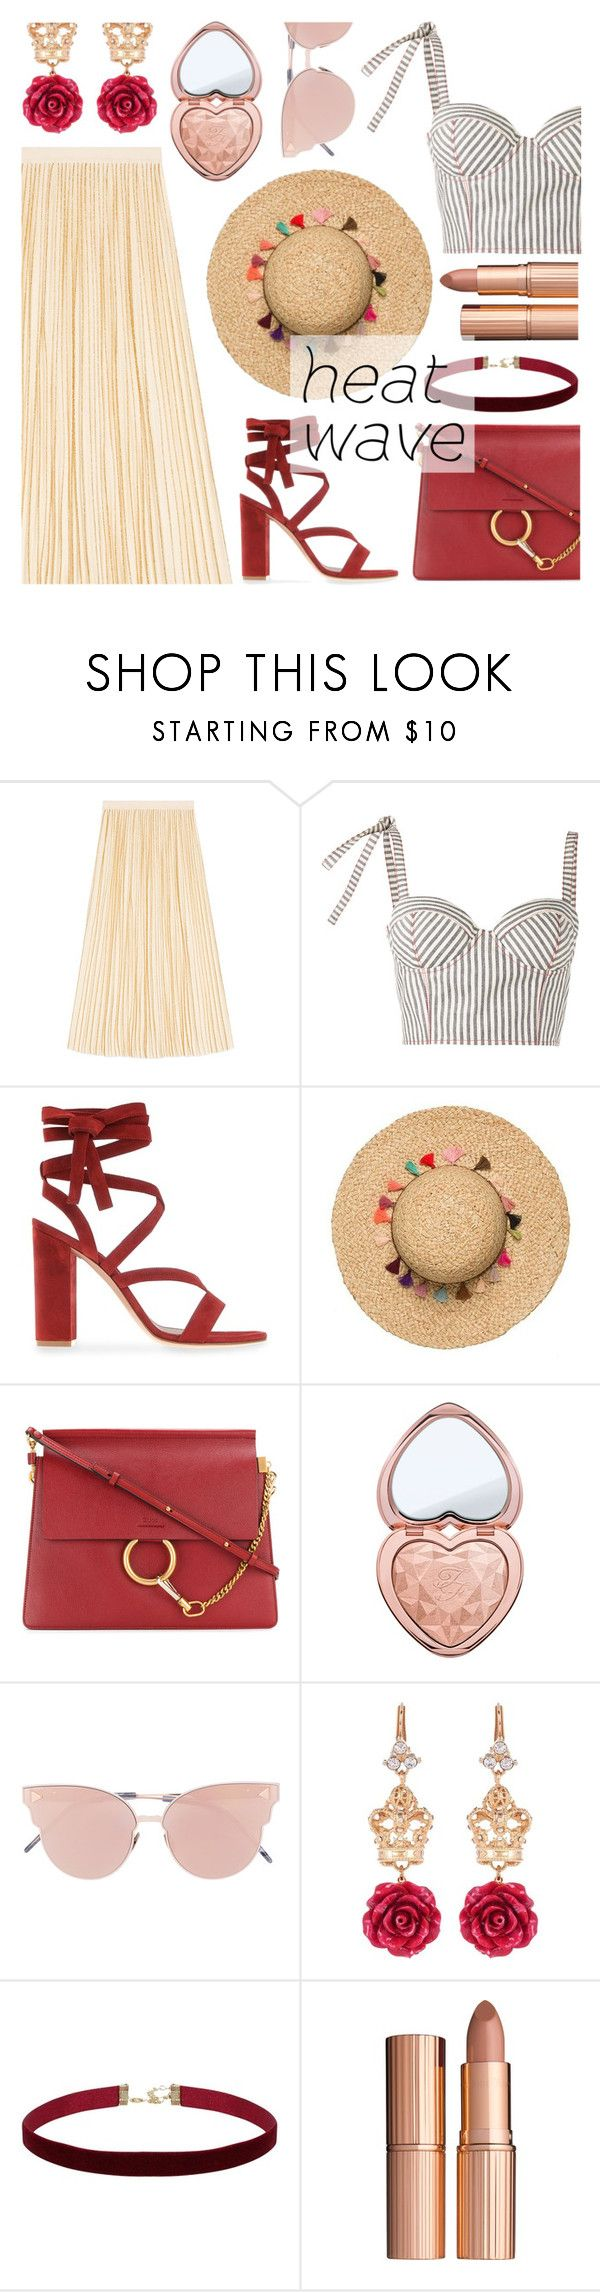 How to Dress for a Heat Wave by dora04 on Polyvore featuring Rosie Assoulin, Gucci, Gianvito Rossi, Chloé, Dolce&Gabbana, So.Ya, Too Faced Cosmetics, Charlotte Tilbury and heatwave